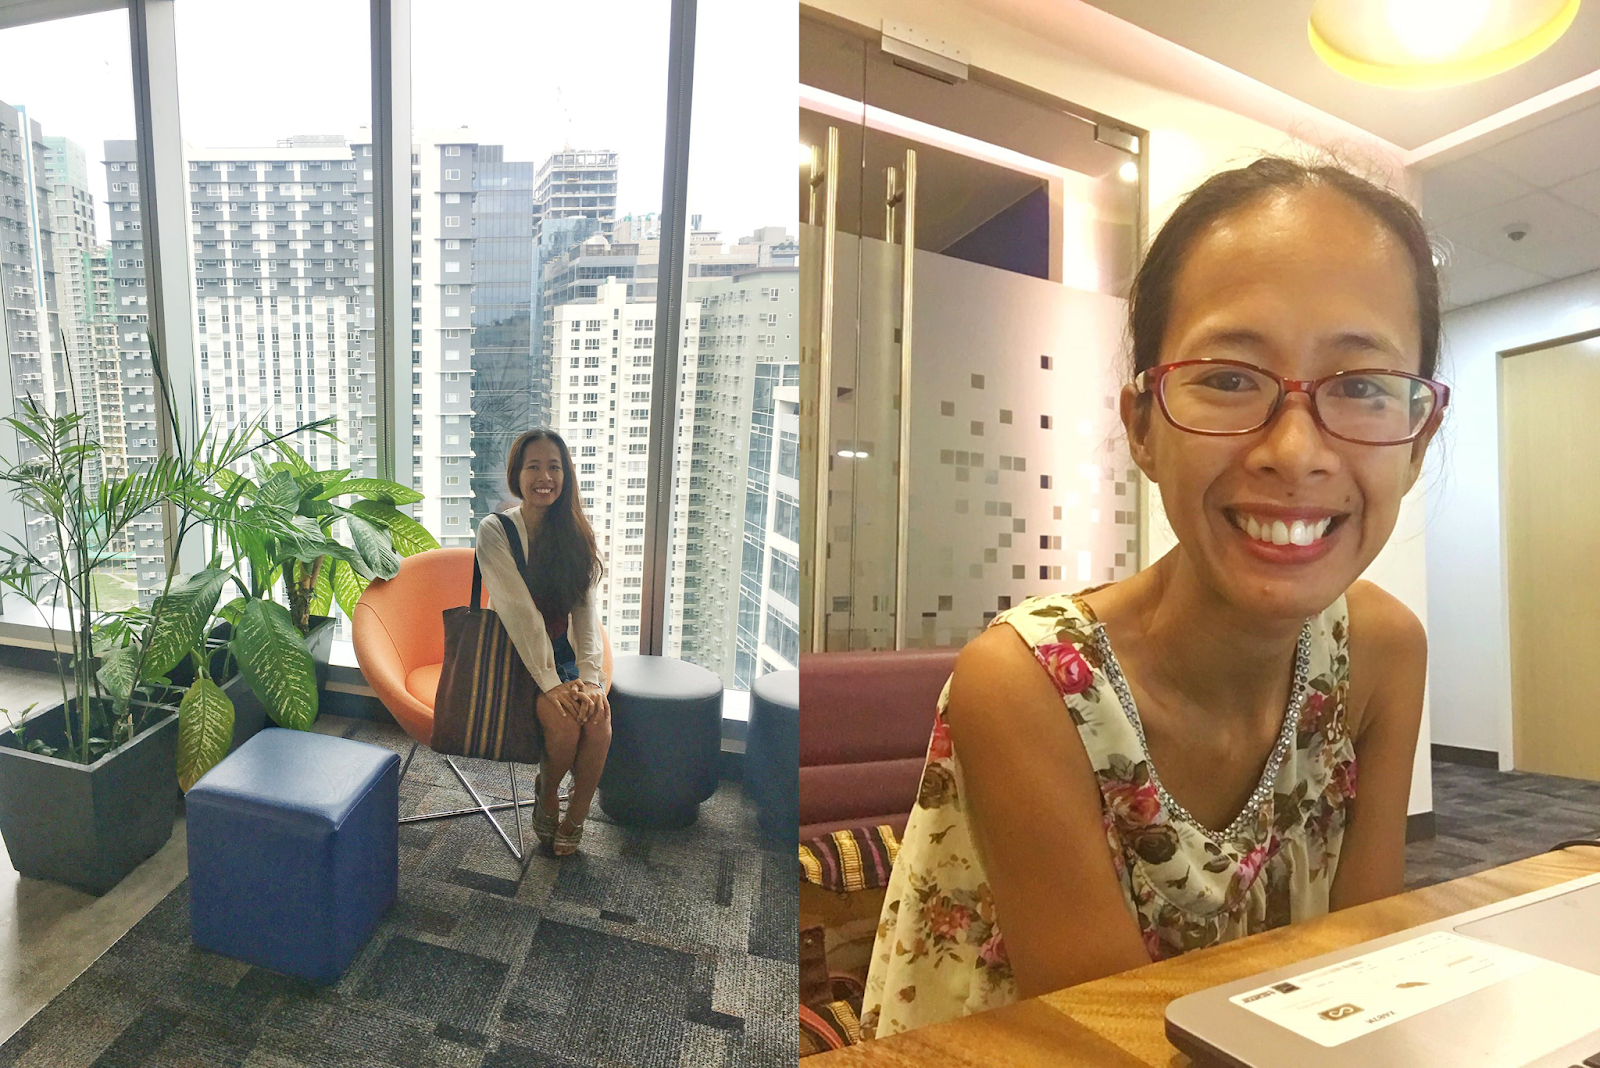 KMC SOLUTIONS COWORKING SPACE IN BGC